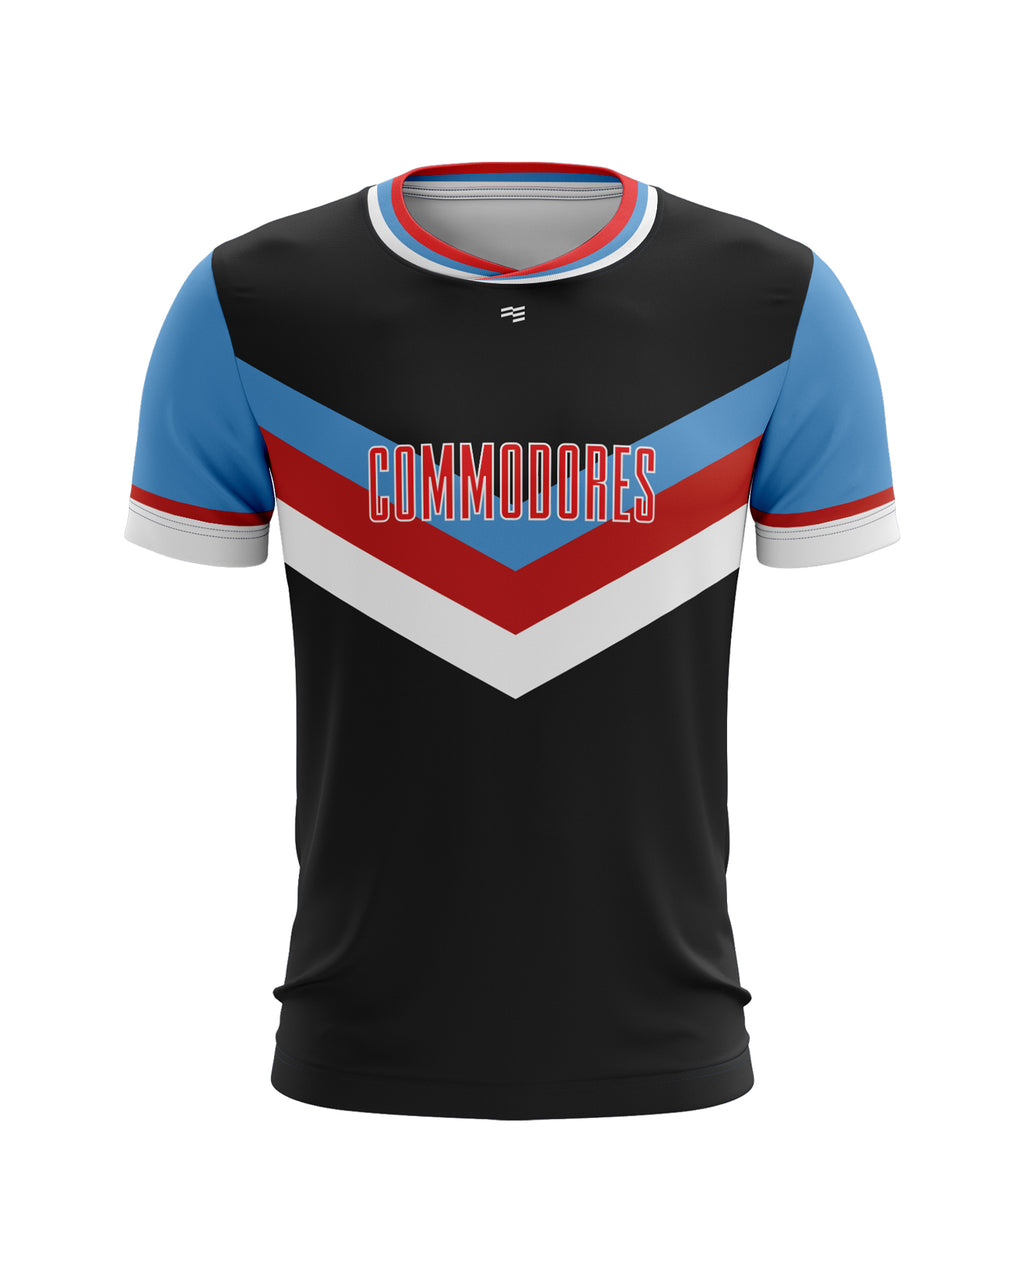 Commodores Rugby Jersey - Mens